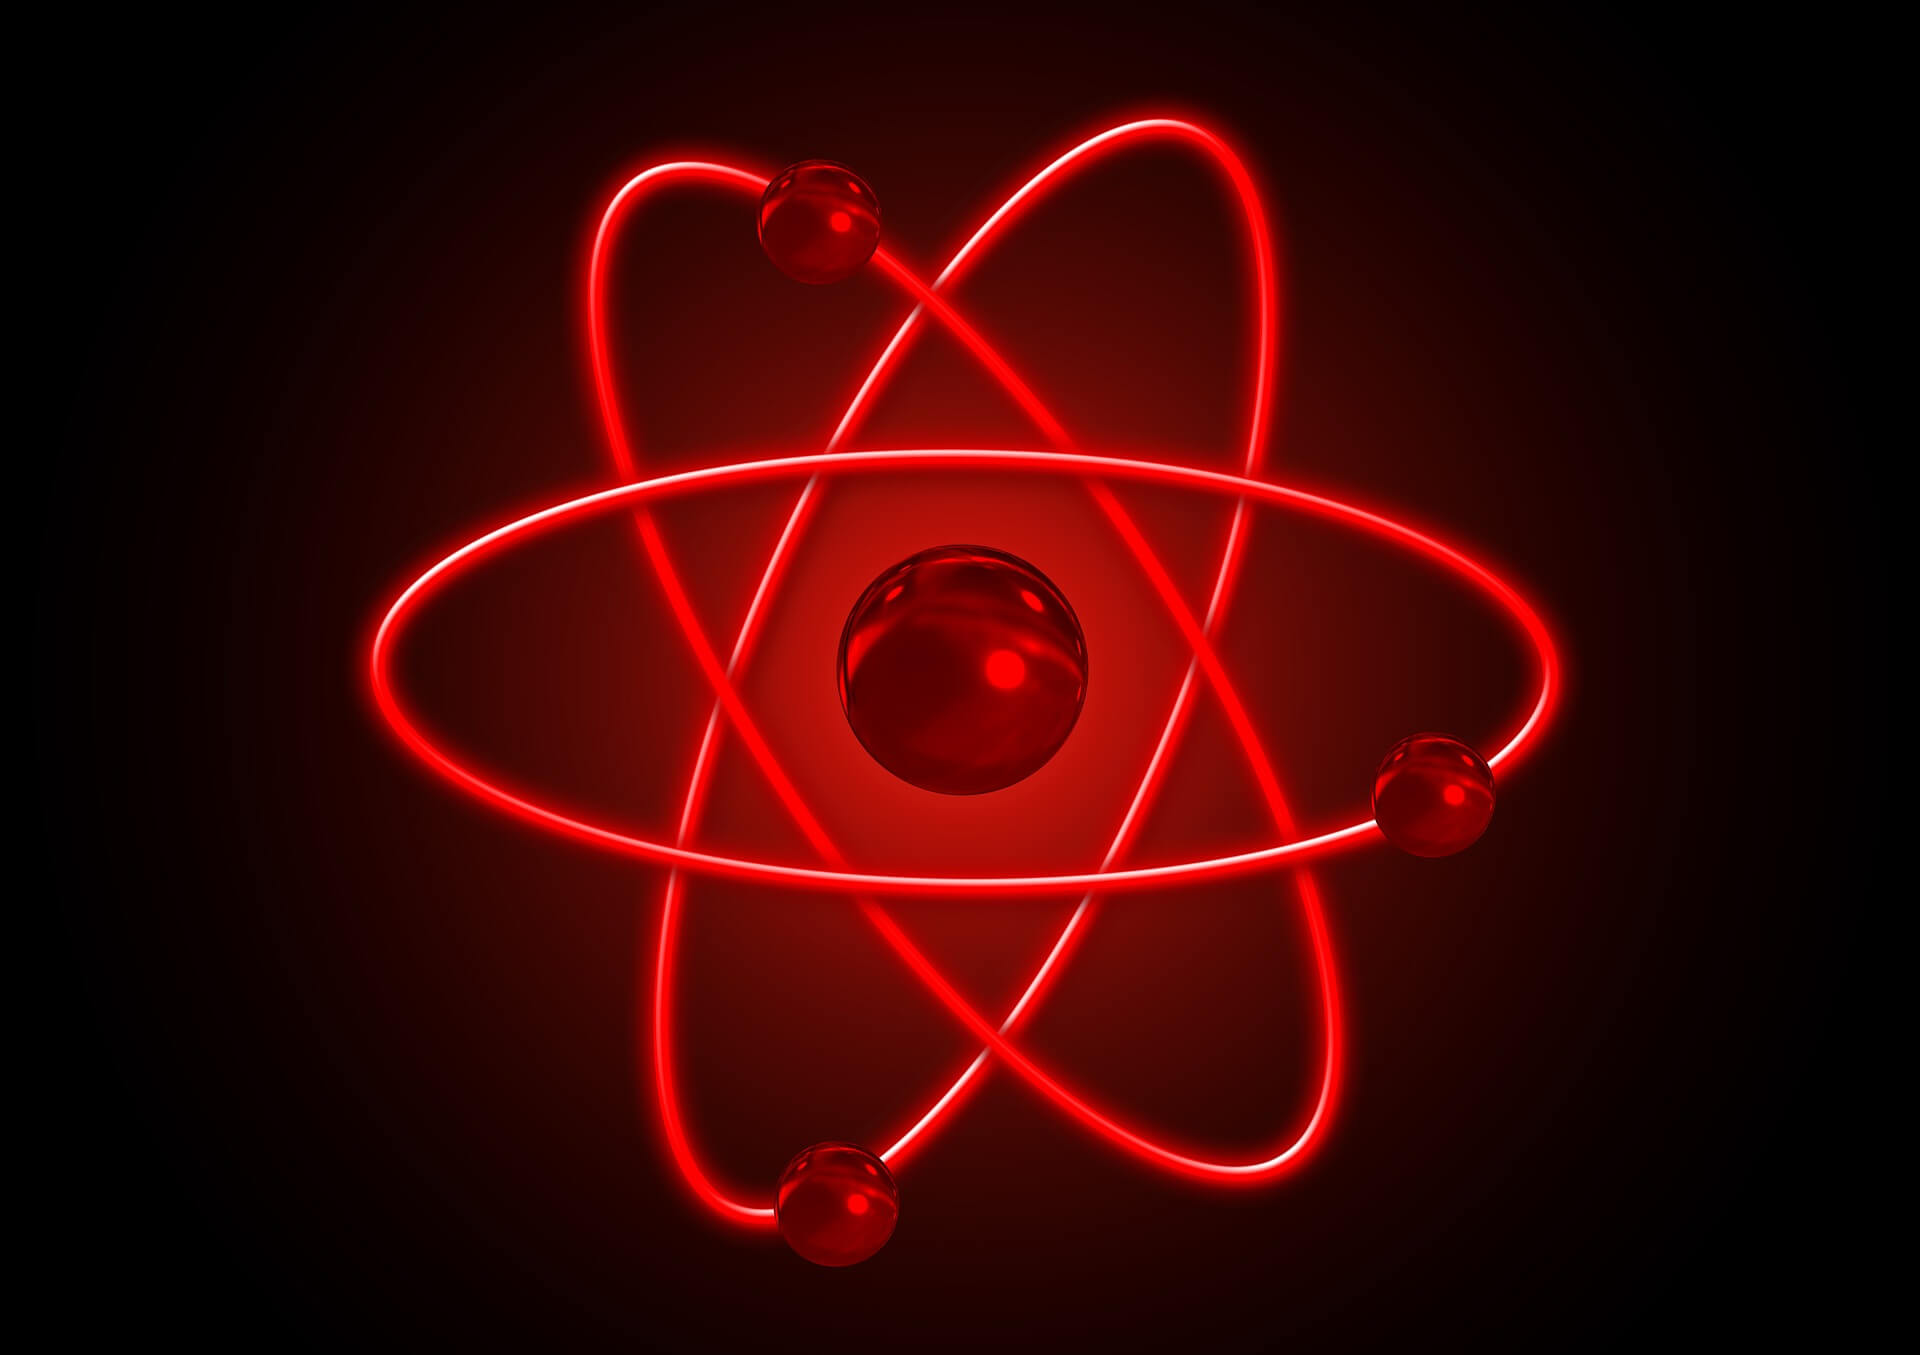 When ever nuclear power is mentioned there are many that question is use